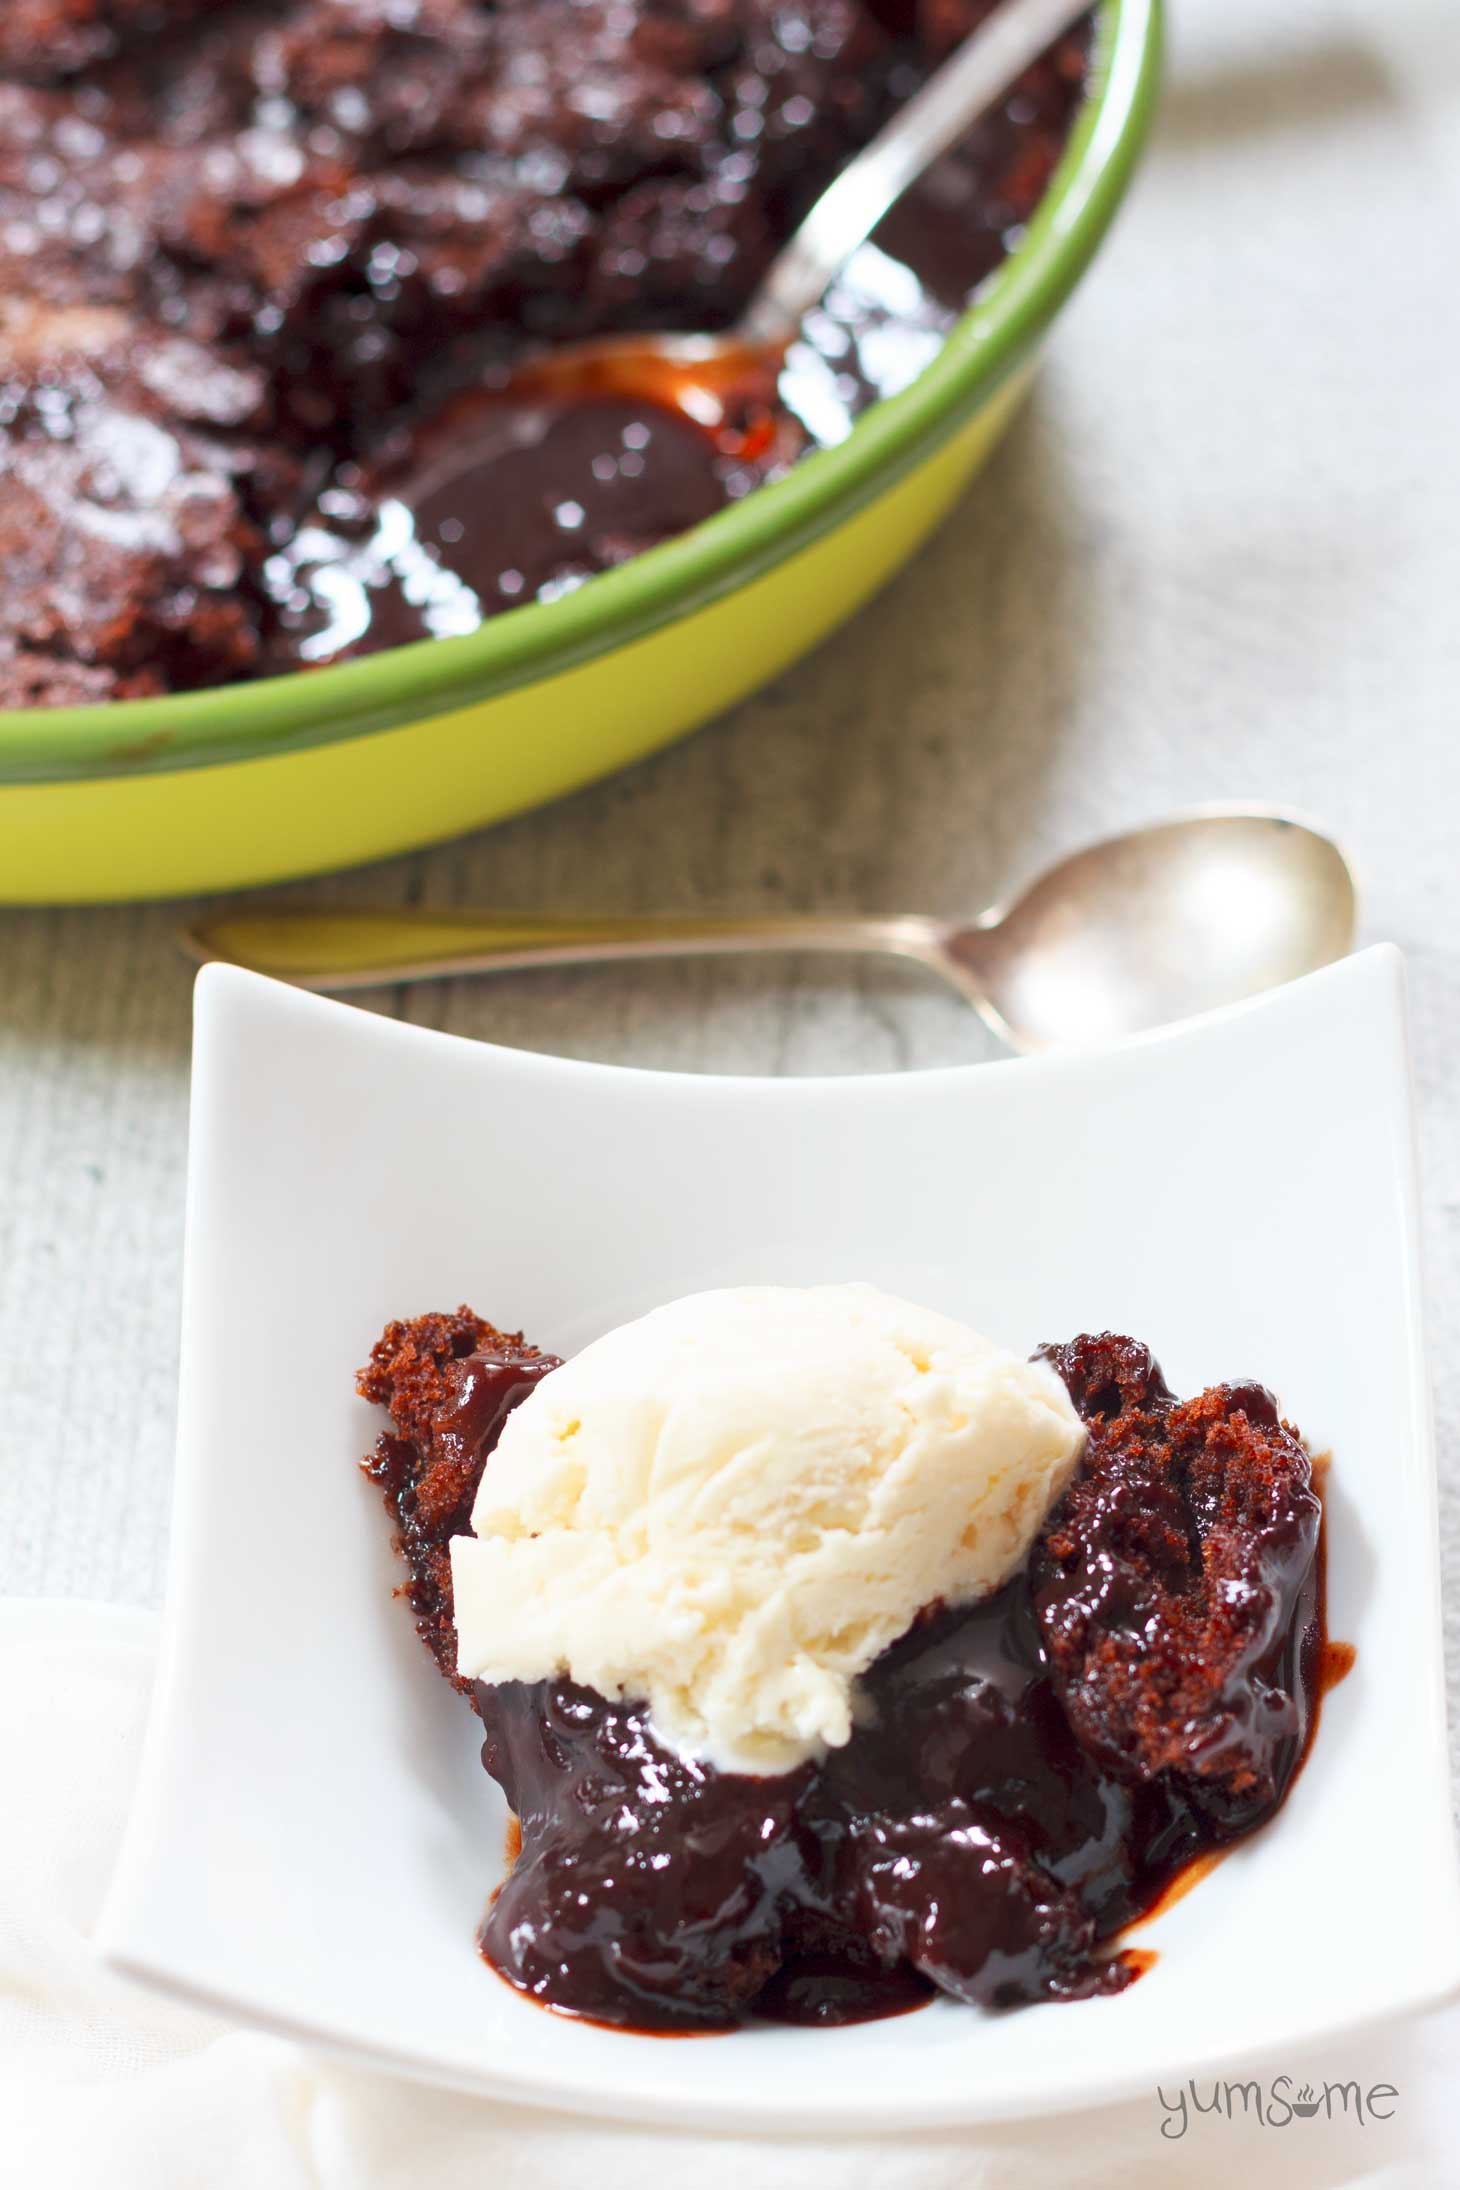 Vegan self-saucing chocolate pudding has a lovely moist, cakey, brownie-like, top part, with a rich velvety sauce hidden underneath. | yumsome.com